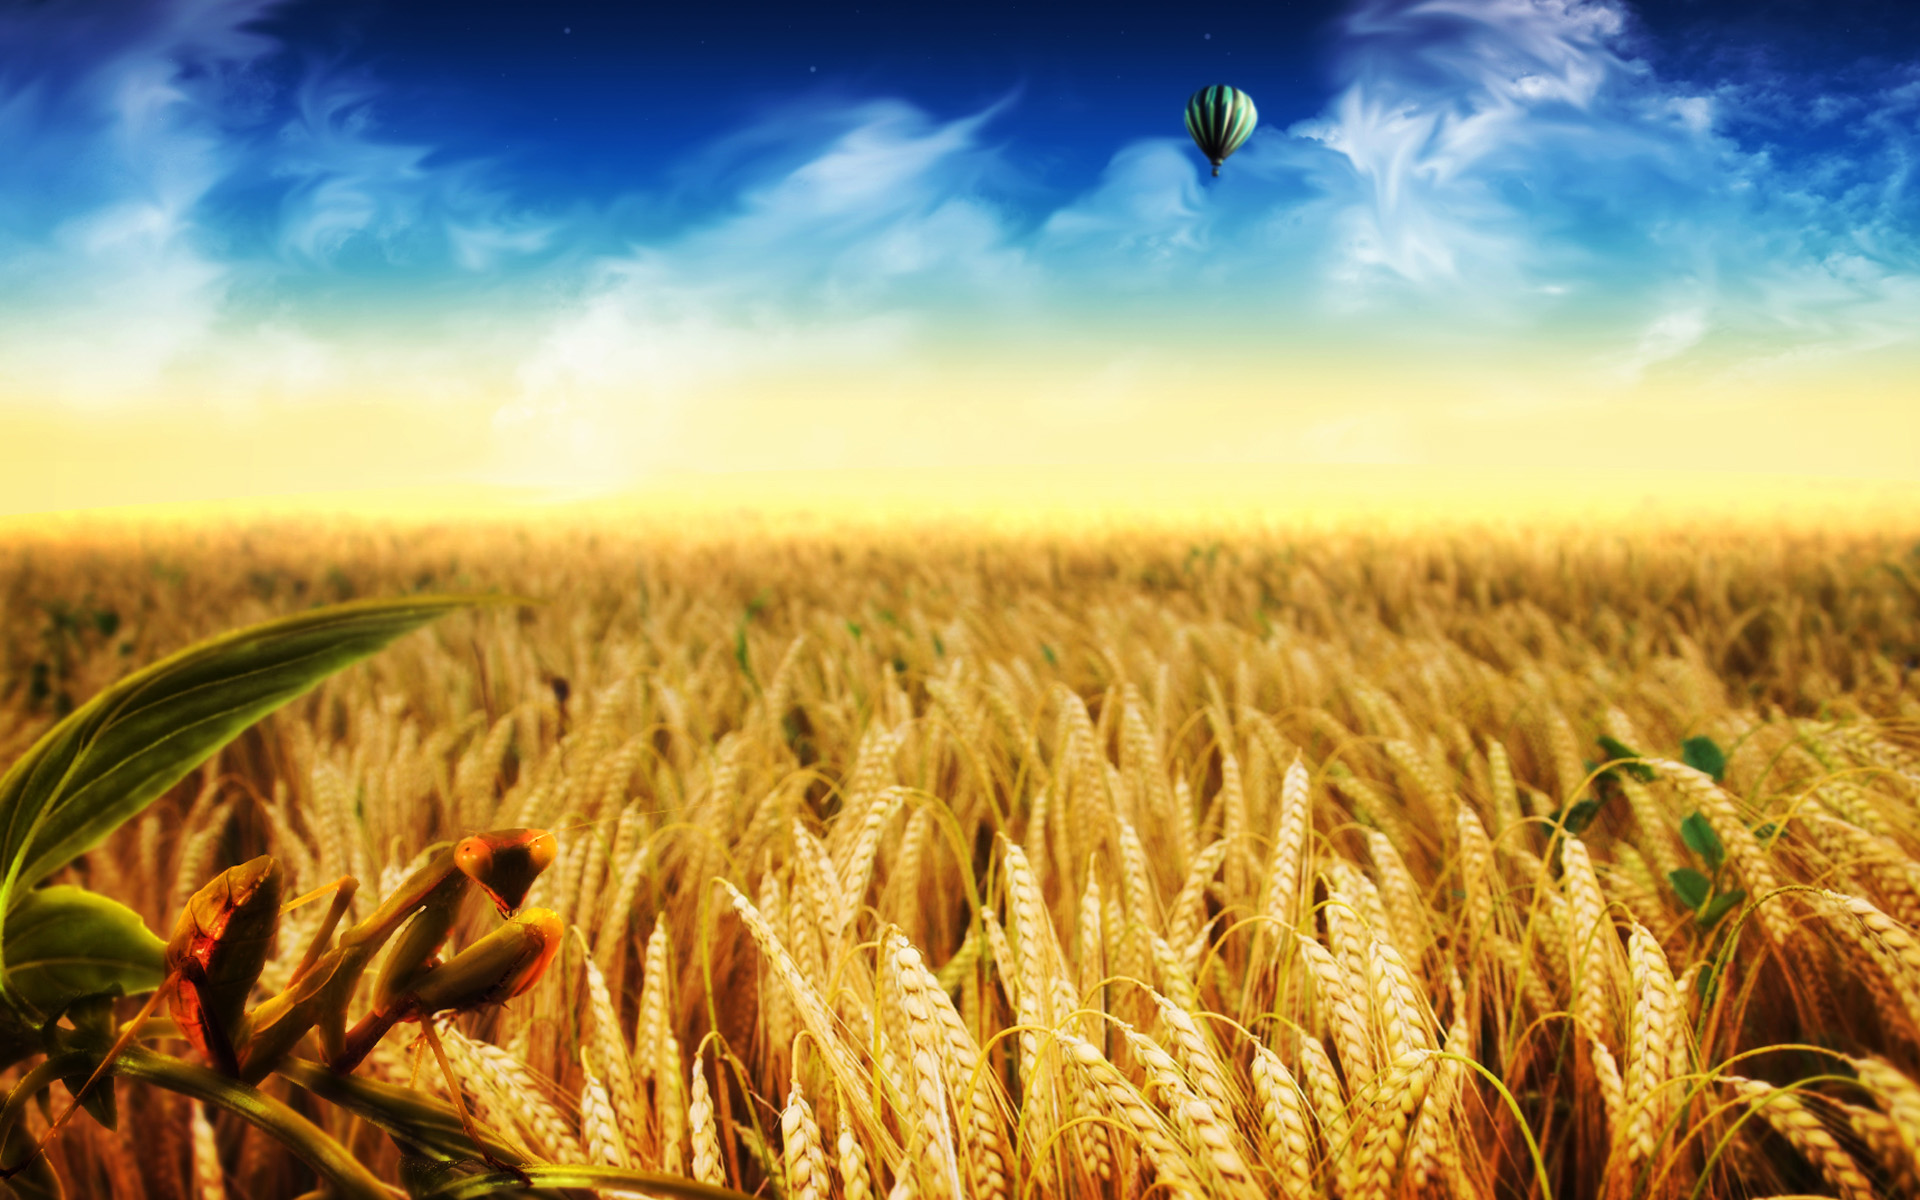 Cornfield Wallpaper 21305